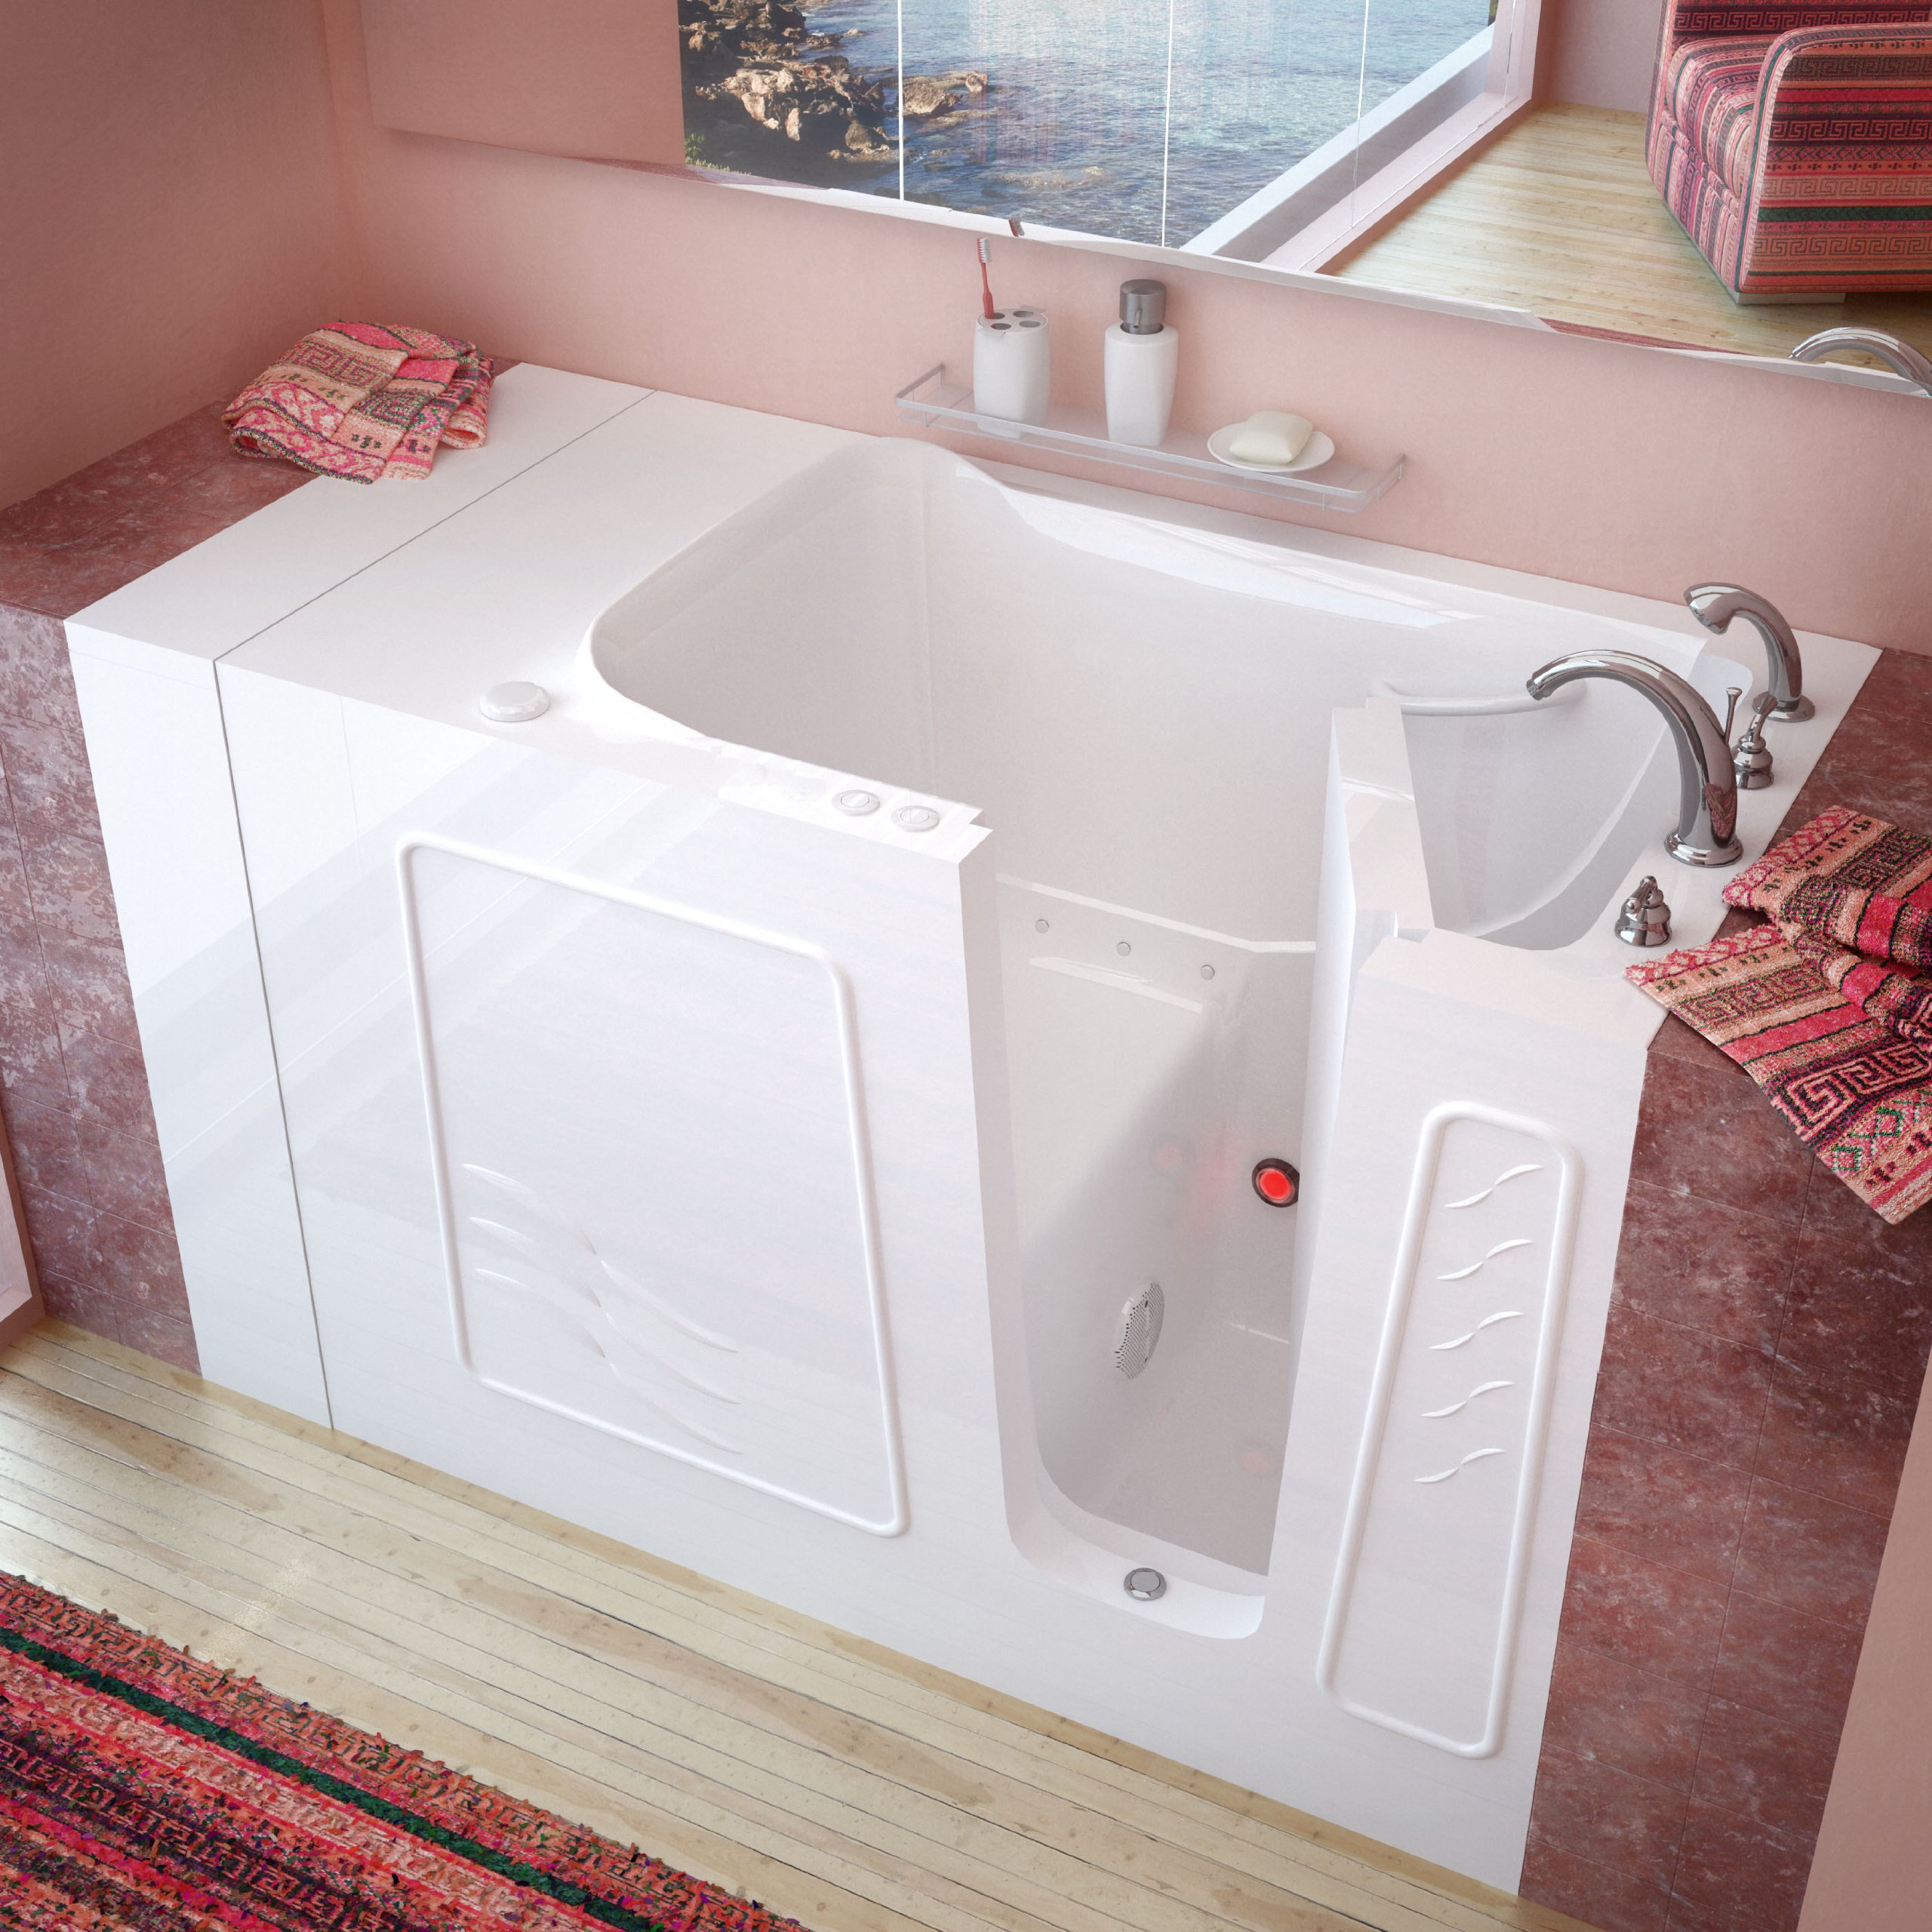 MediTub MT3053RWA Standard Fit 30 by 53 by 38-Inch Air Jetted Walk In Bathtub Spa Right Side Door, White